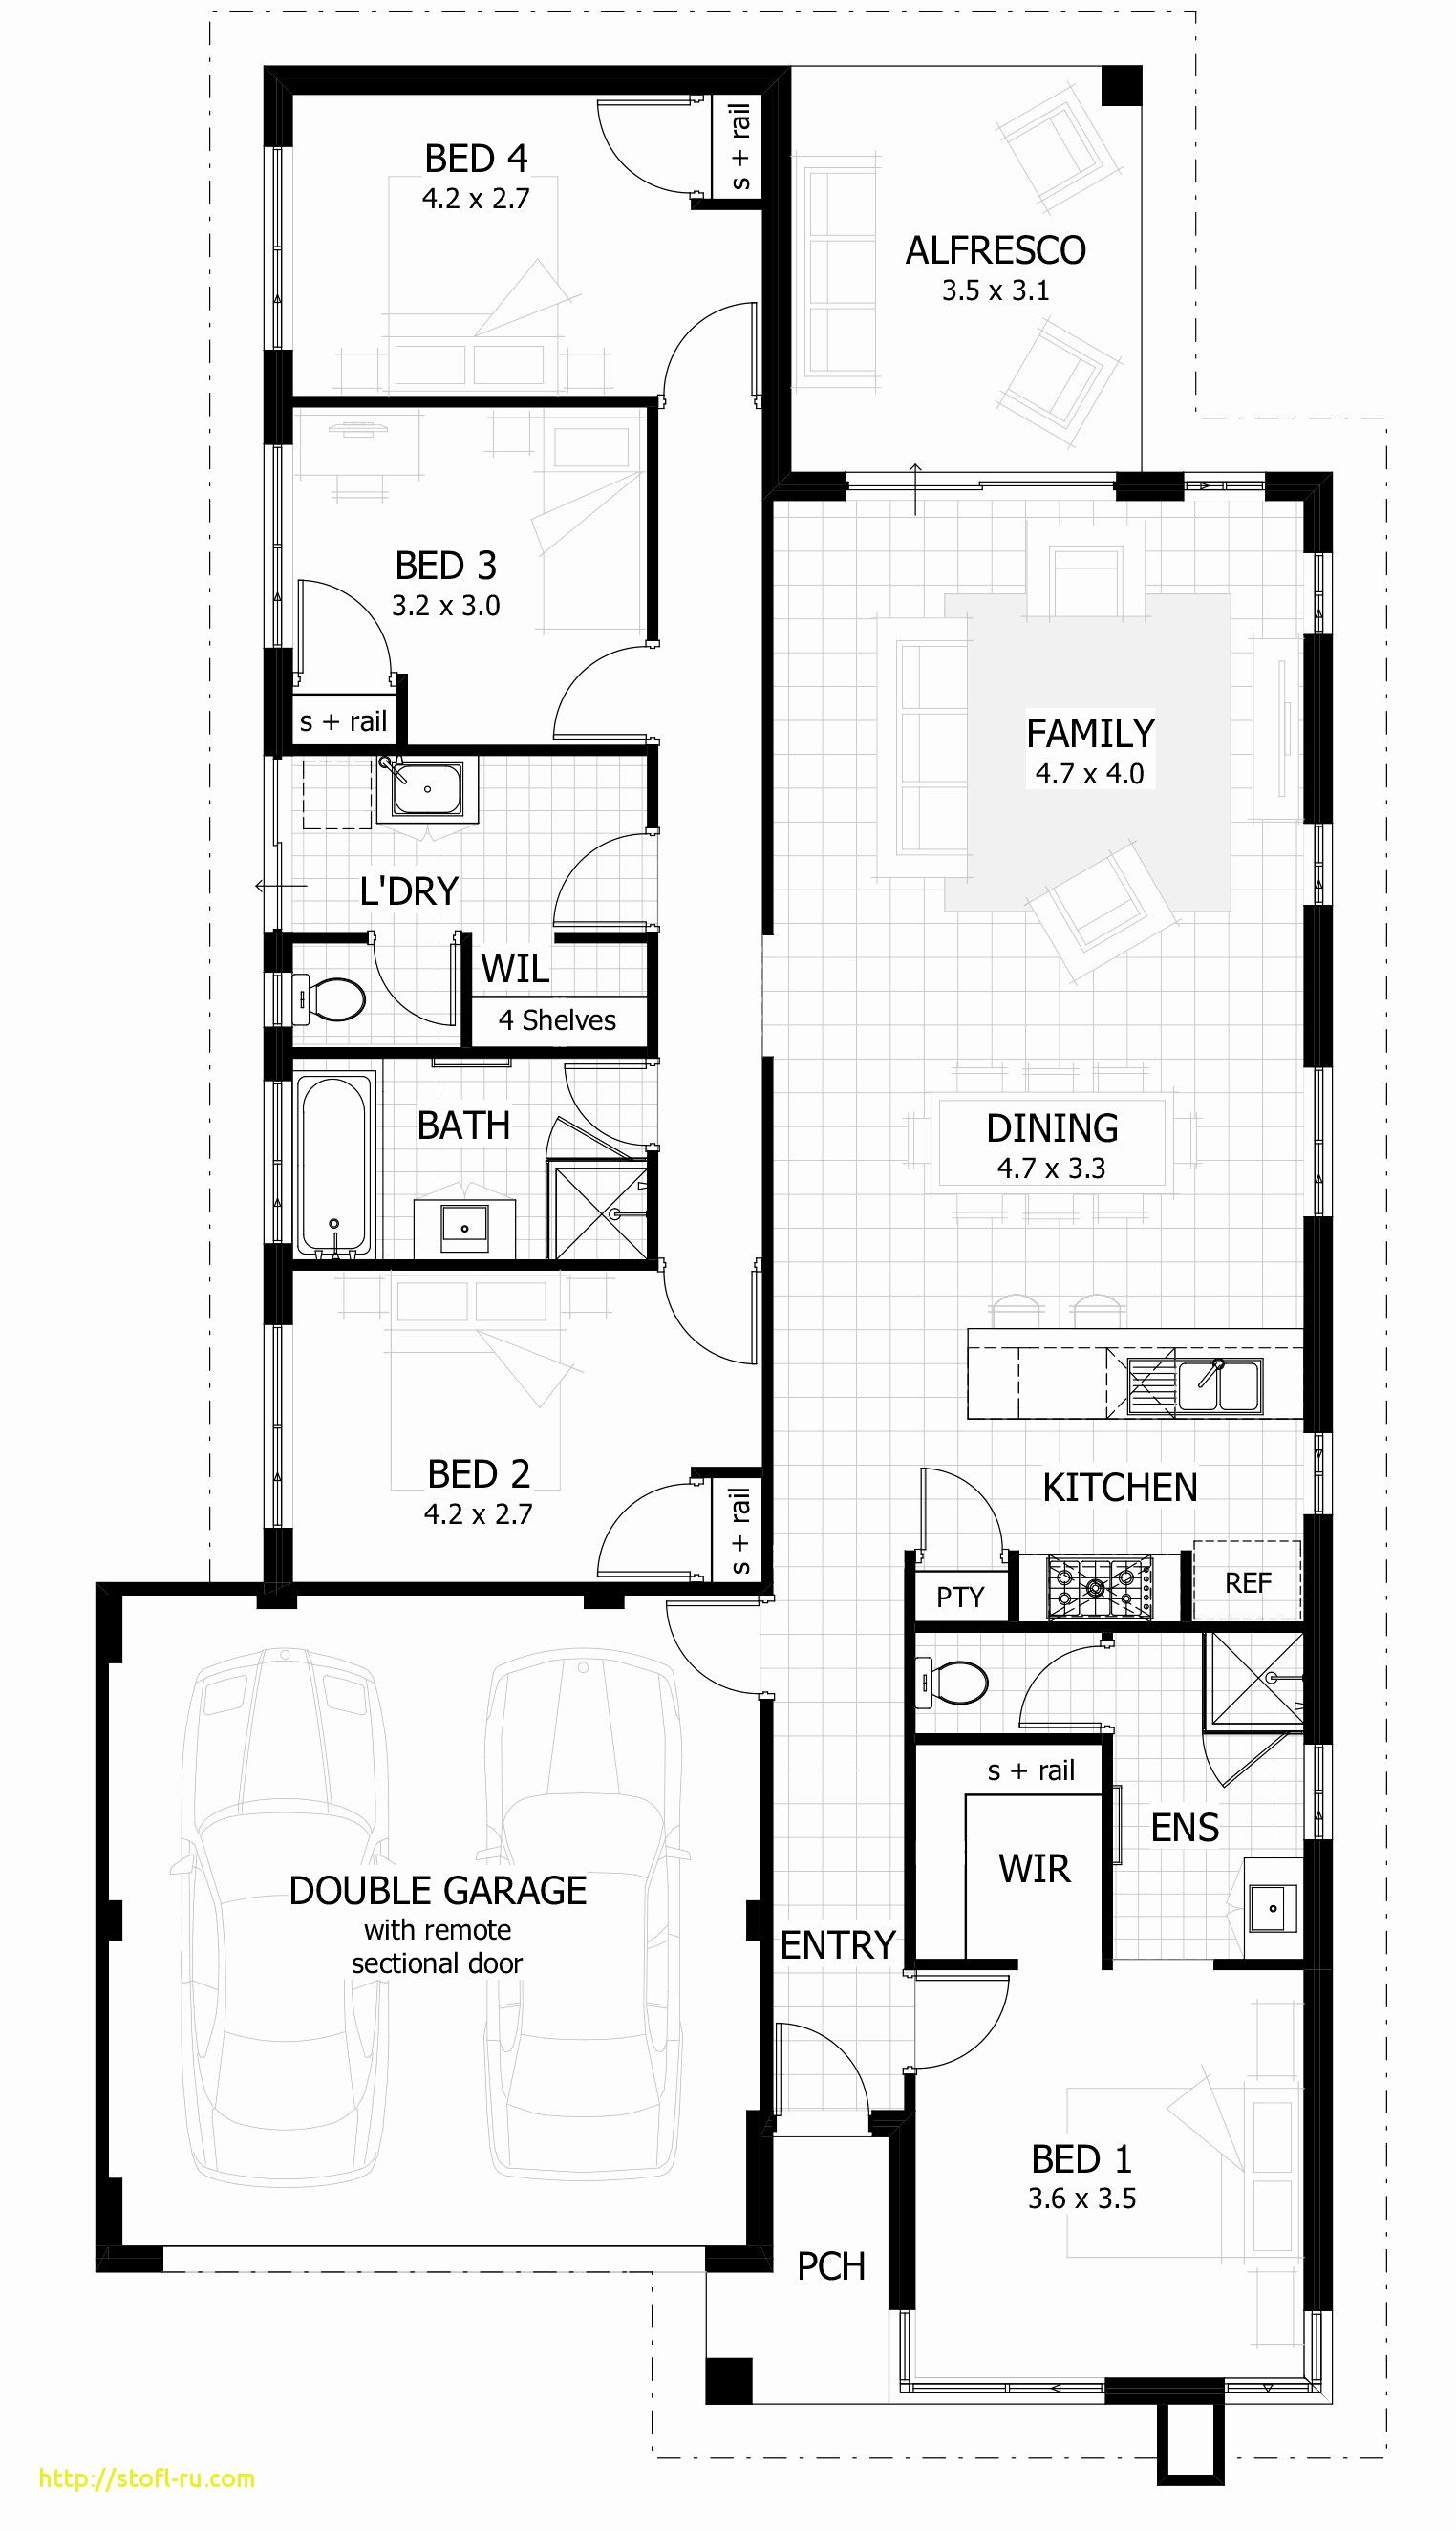 One Story House Plans For Narrow Lots Modern Style House Design Ideas Houseplans House Ho Narrow Lot House Plans Narrow House Plans 6 Bedroom House Plans